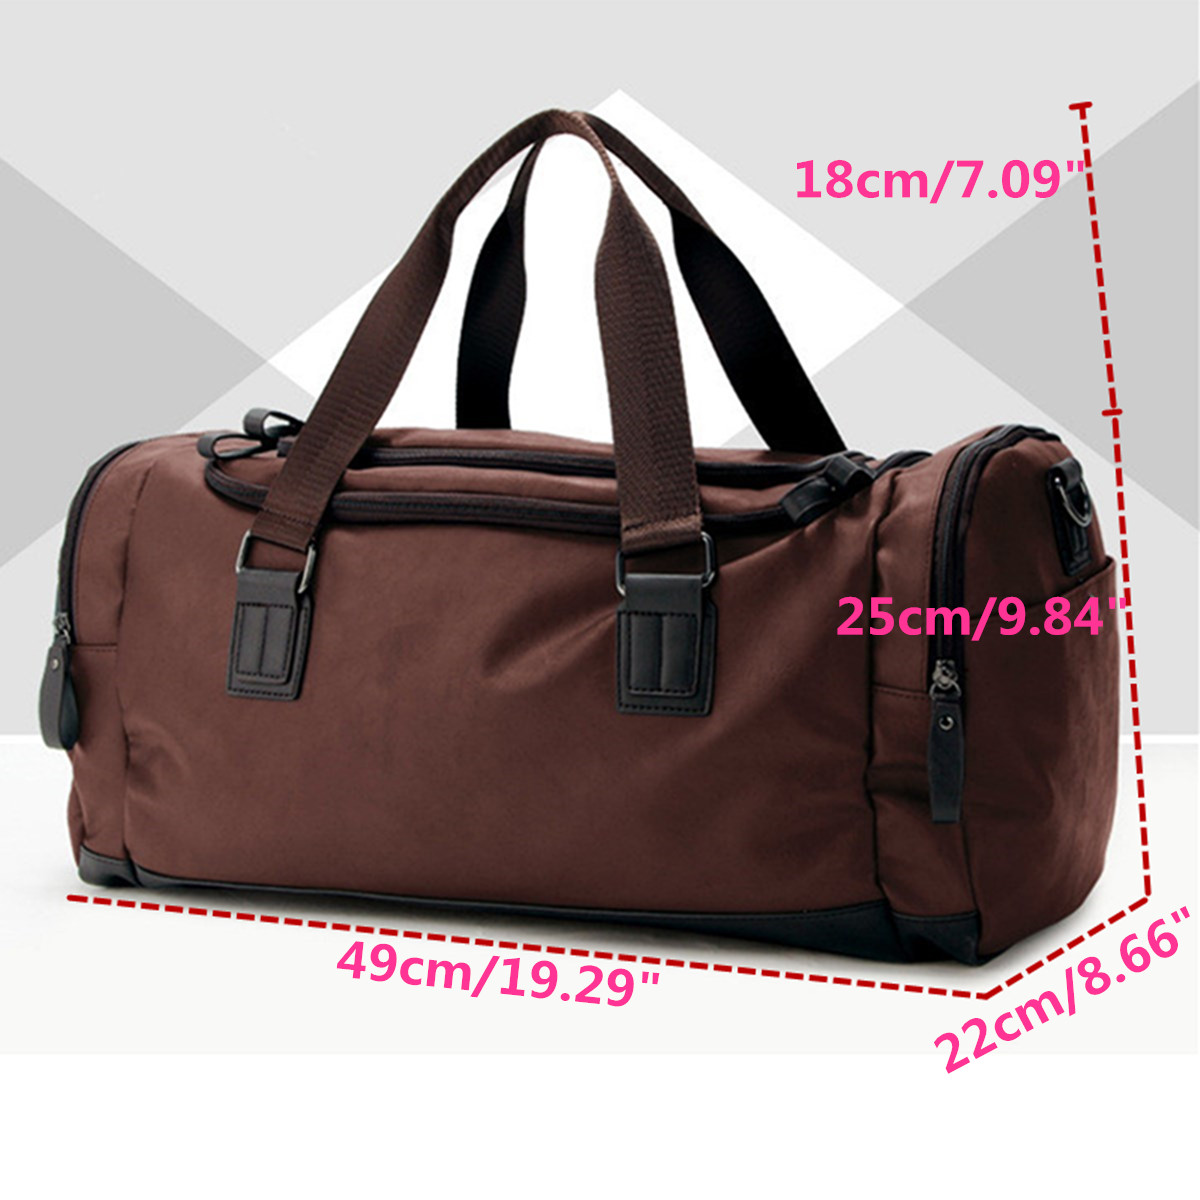 49x22x25cm PU Leather Outdoor Sports Bag Portable Camping Handbags Travel Bag for Gym Fitness